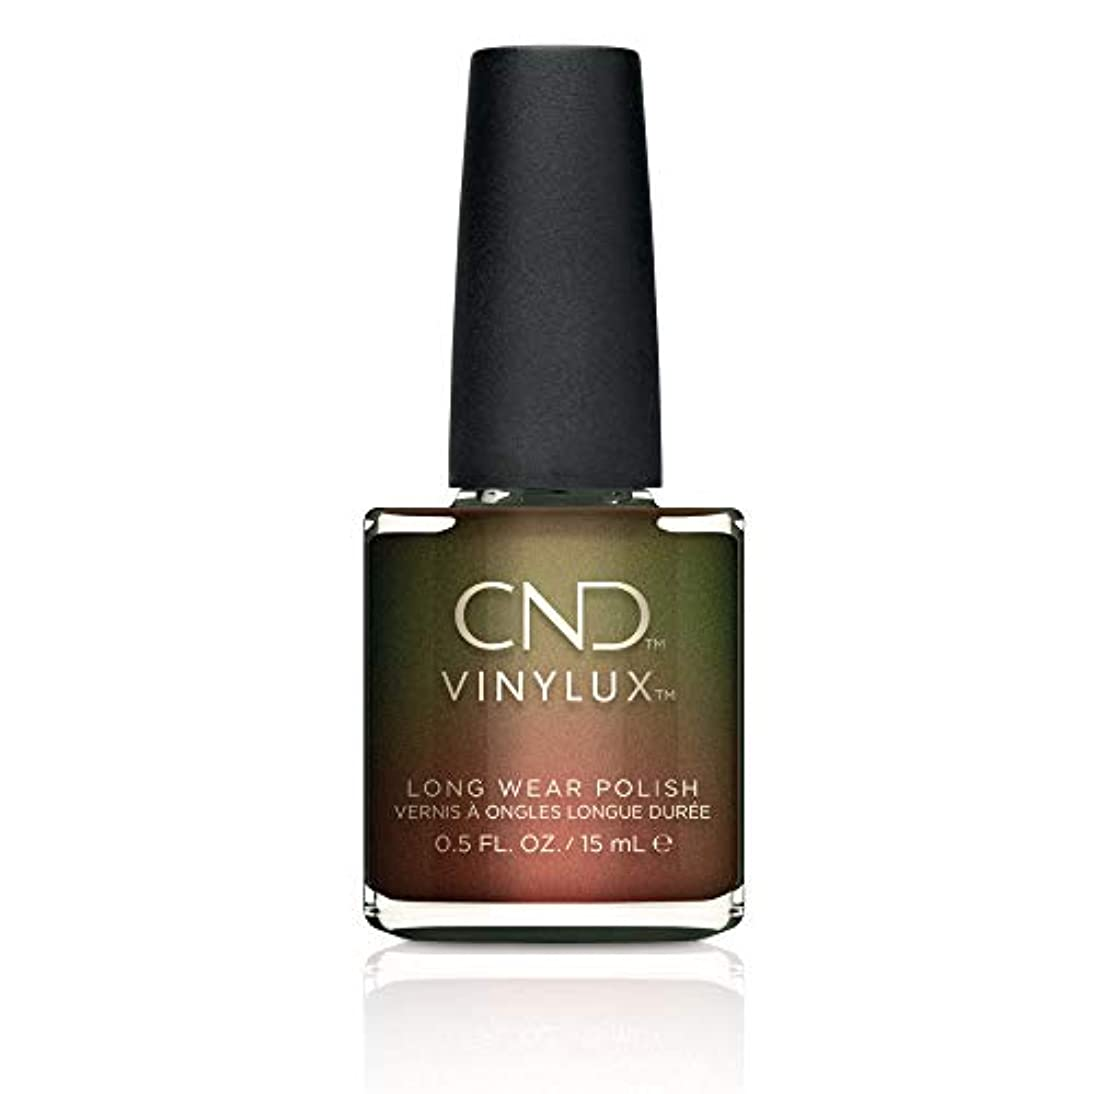 羨望好きである縁石CND Vinylux Nail Polish - Fall 2017 Night Spell Collection - Hypnotic Dreams - 0.5oz / 15ml